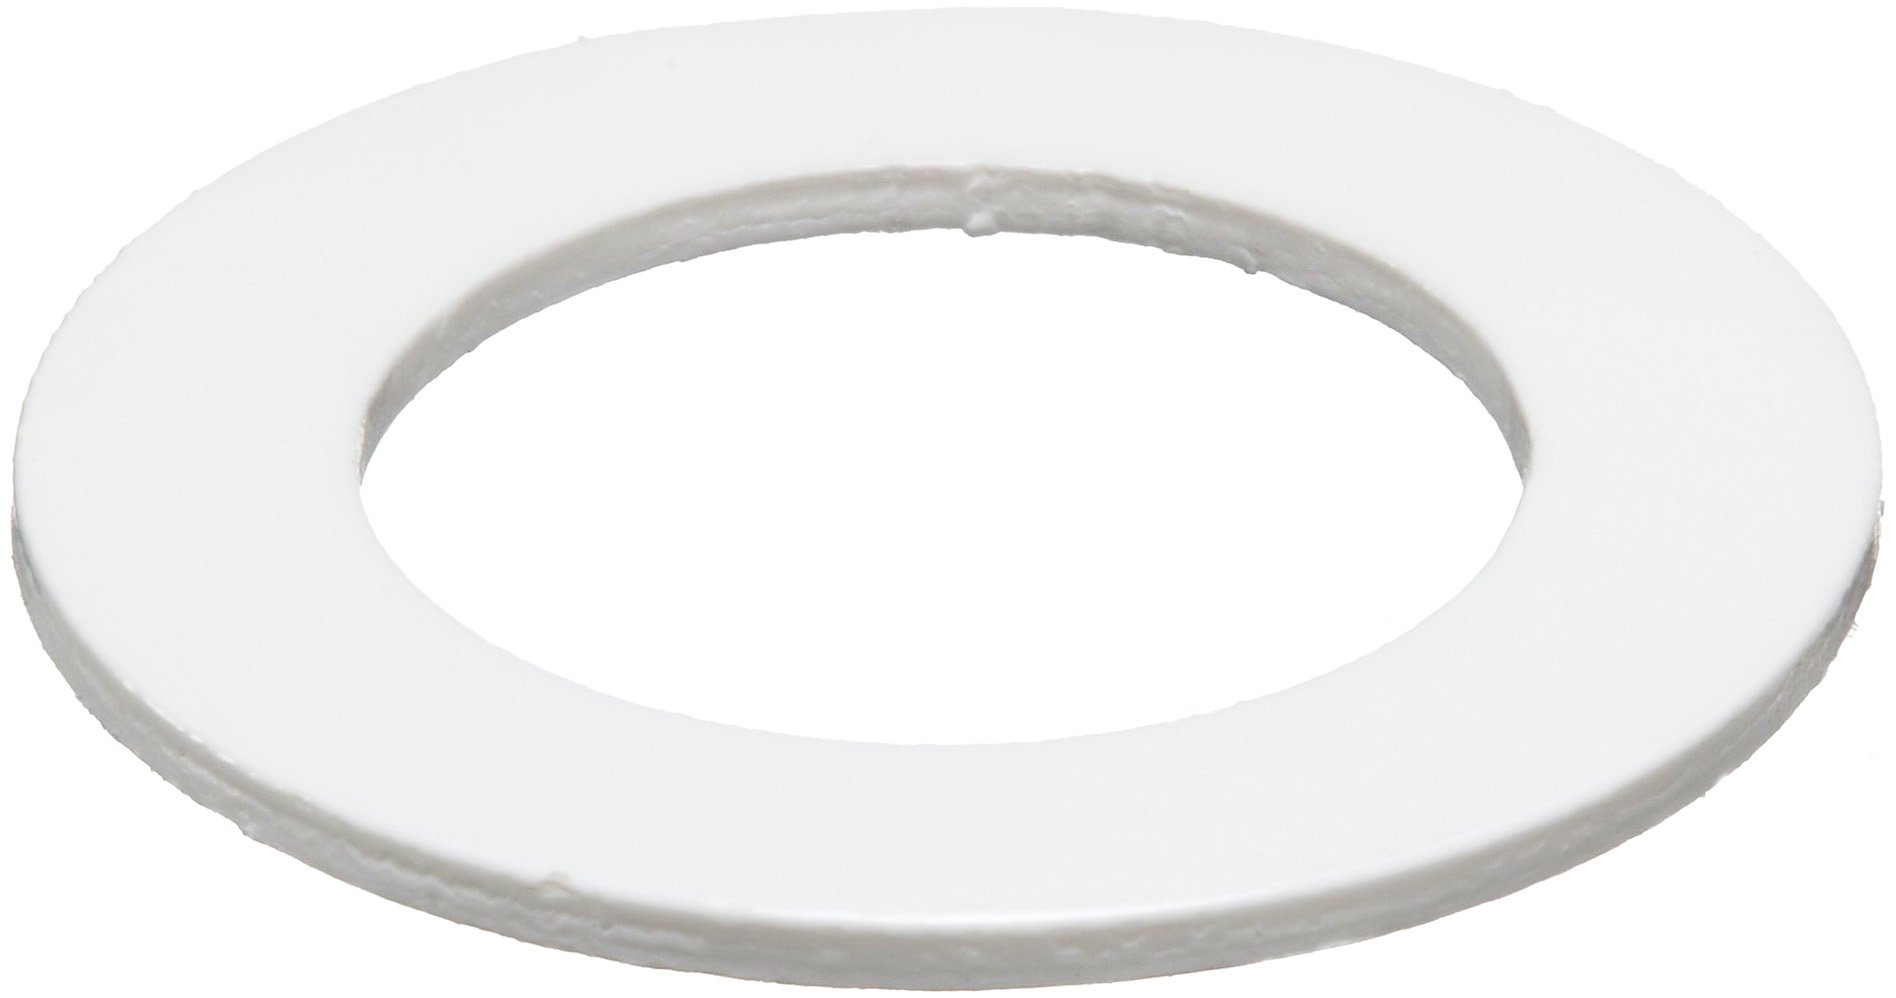 PVC (Polyvinyl Chloride) Round Shim, White, 0.025'' Thickness, 3/4'' ID, 1-1/8'' OD (Pack of 10) by Small Parts